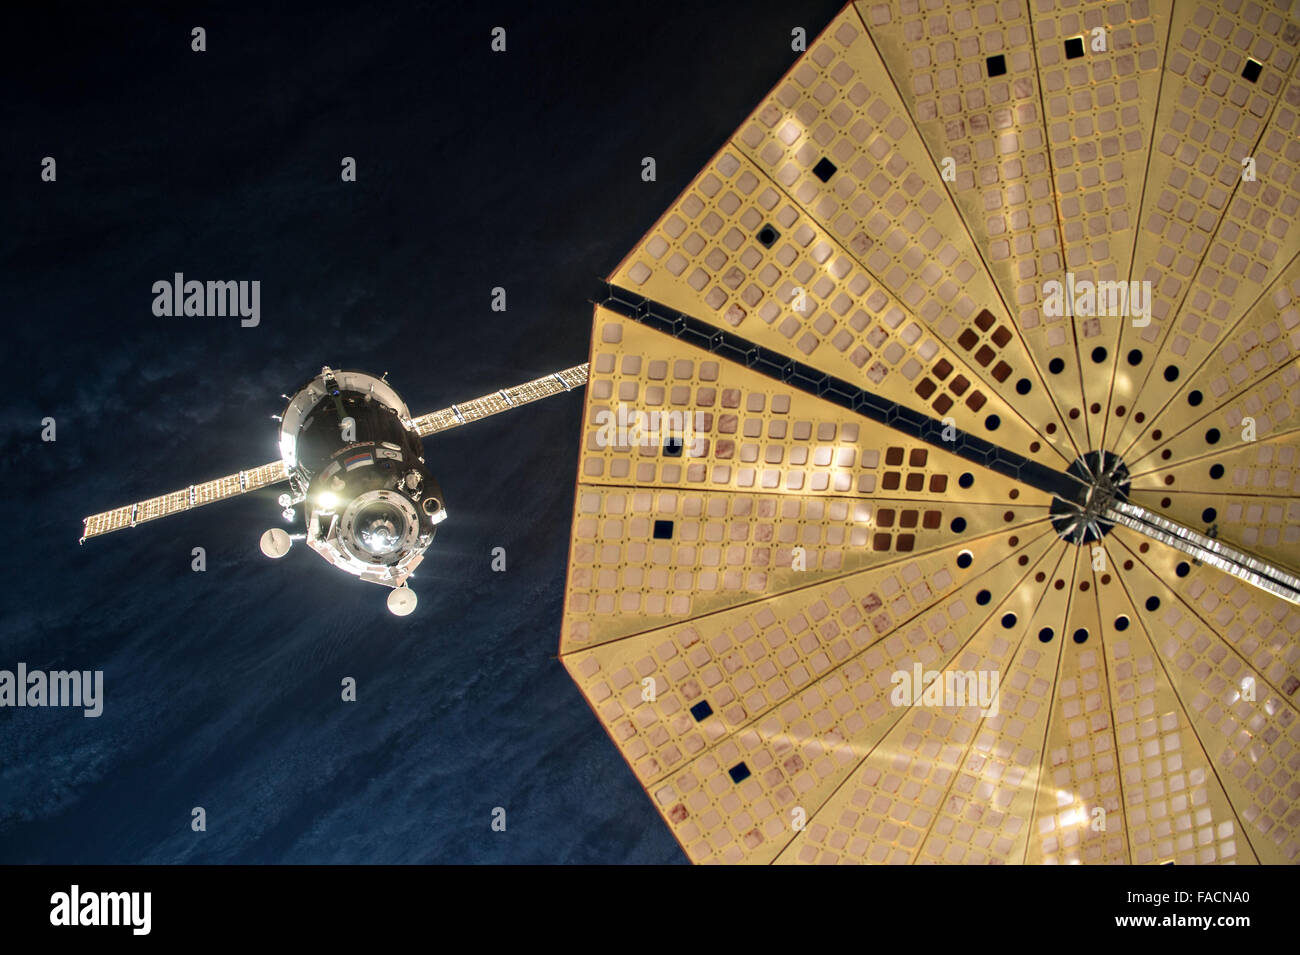 The Russian Soyuz TMA-19M spacecraft approaches for a manual docking to the Rassvet module at the International - Stock Image